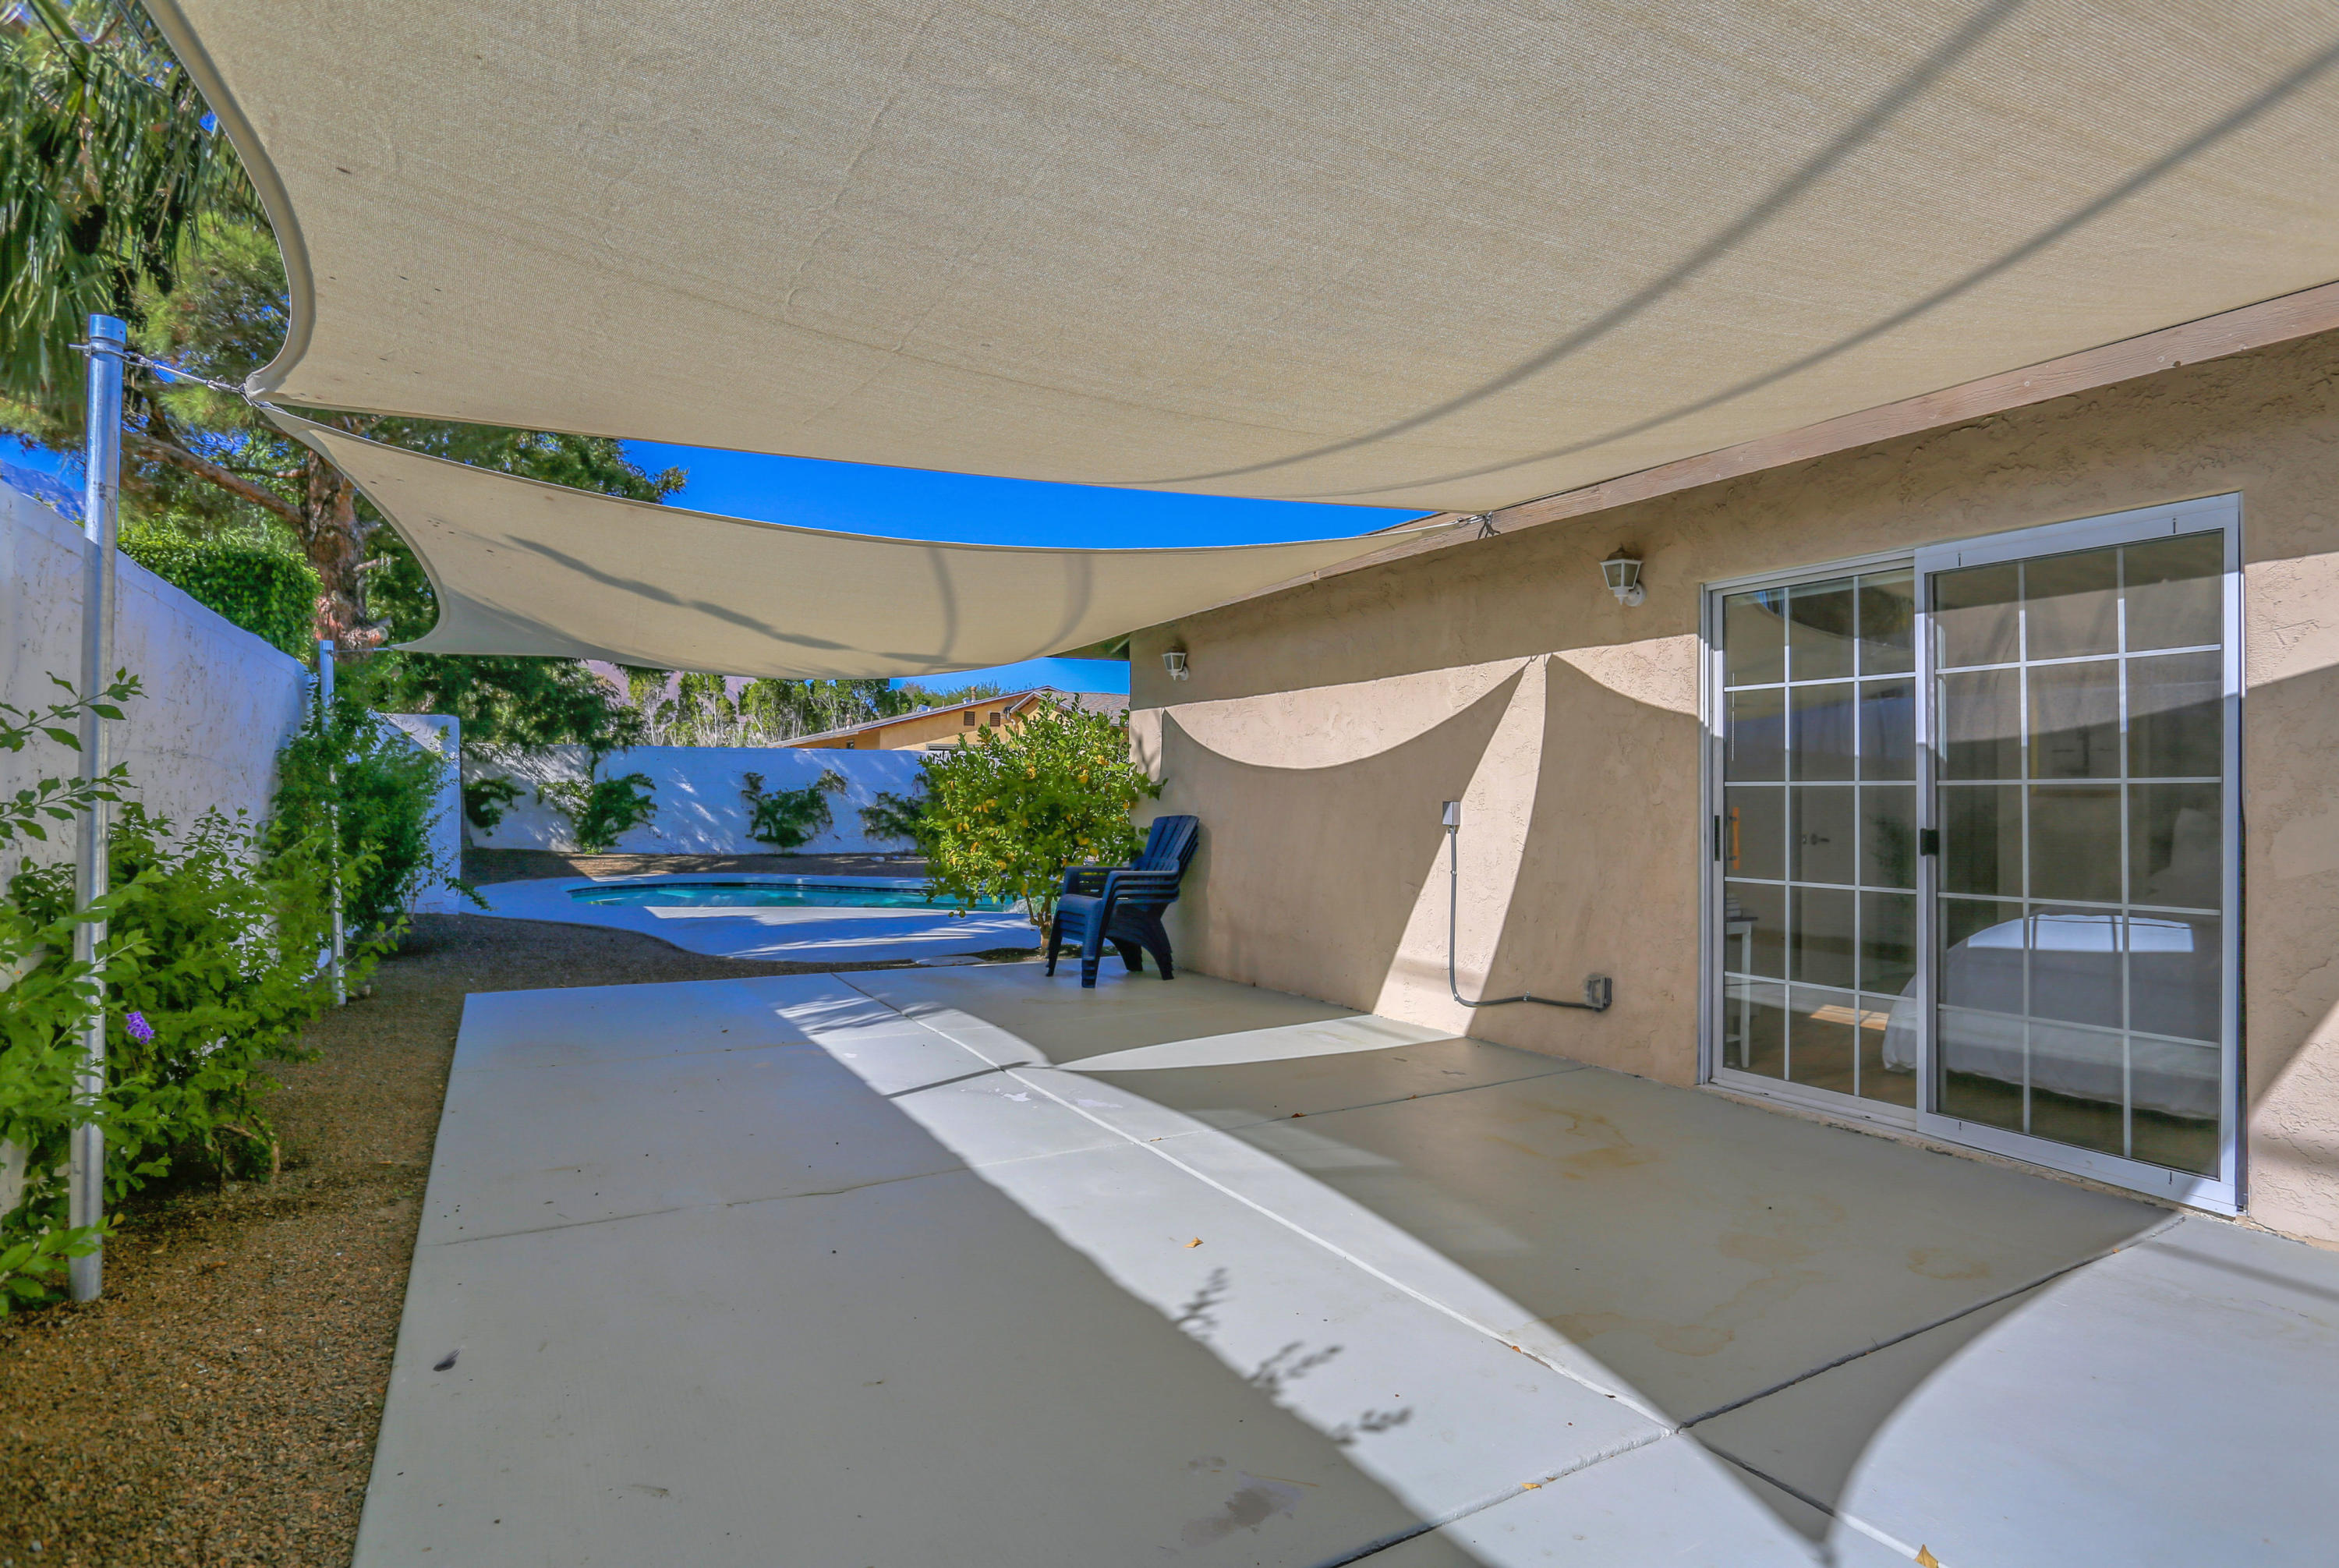 2219 E Bellamy Road, Palm Springs, California 92262, 4 Bedrooms Bedrooms, ,2 BathroomsBathrooms,Residential,For Sale,2219 E Bellamy Road,219034707